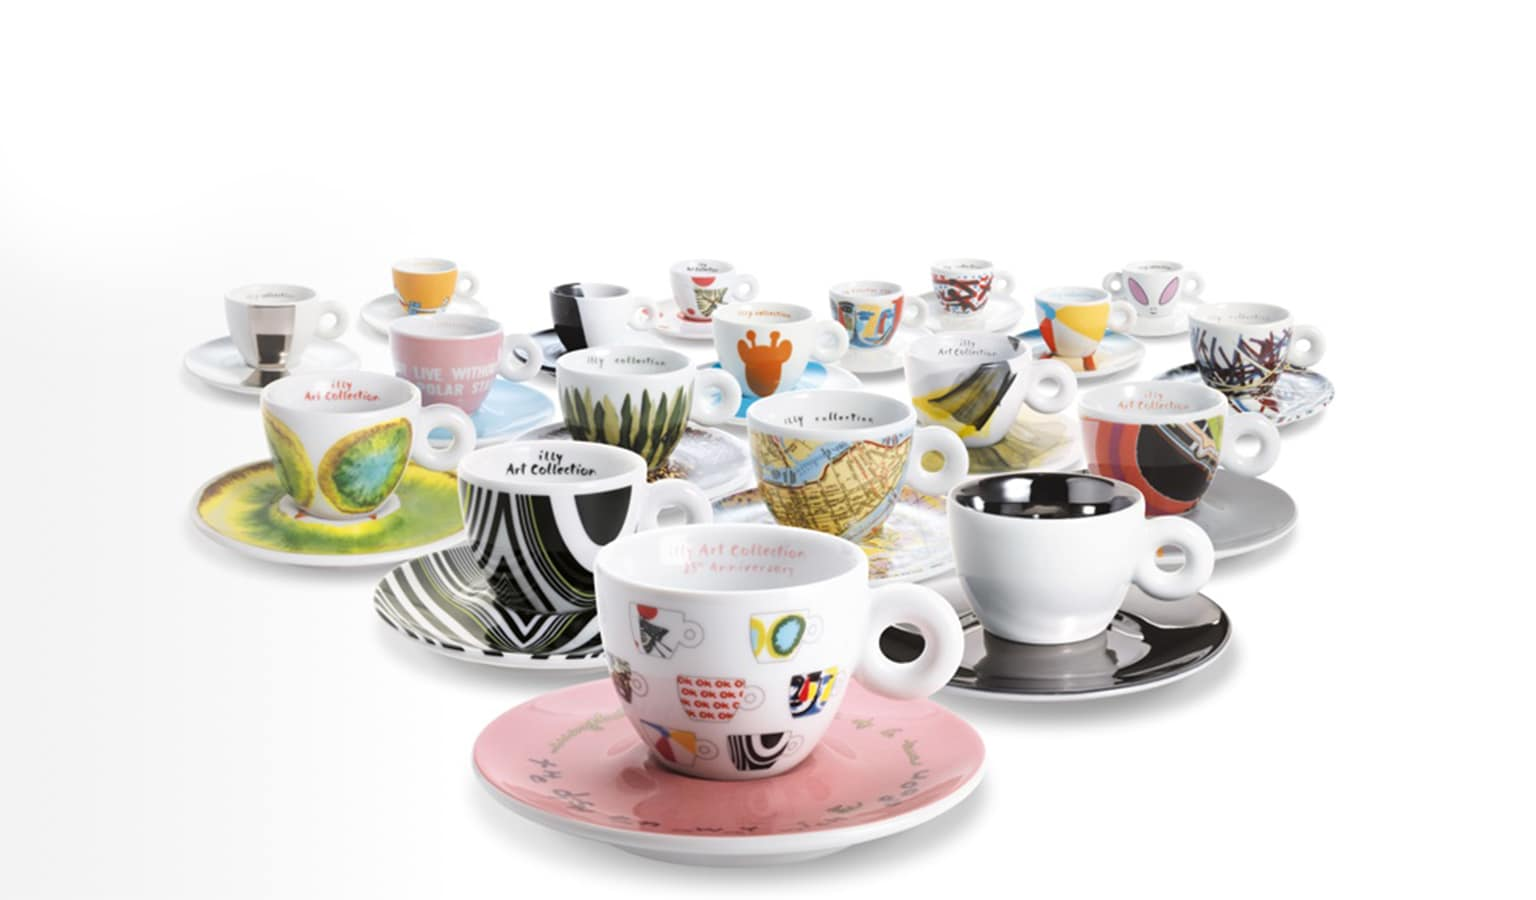 illy art collection espresso cups over the years